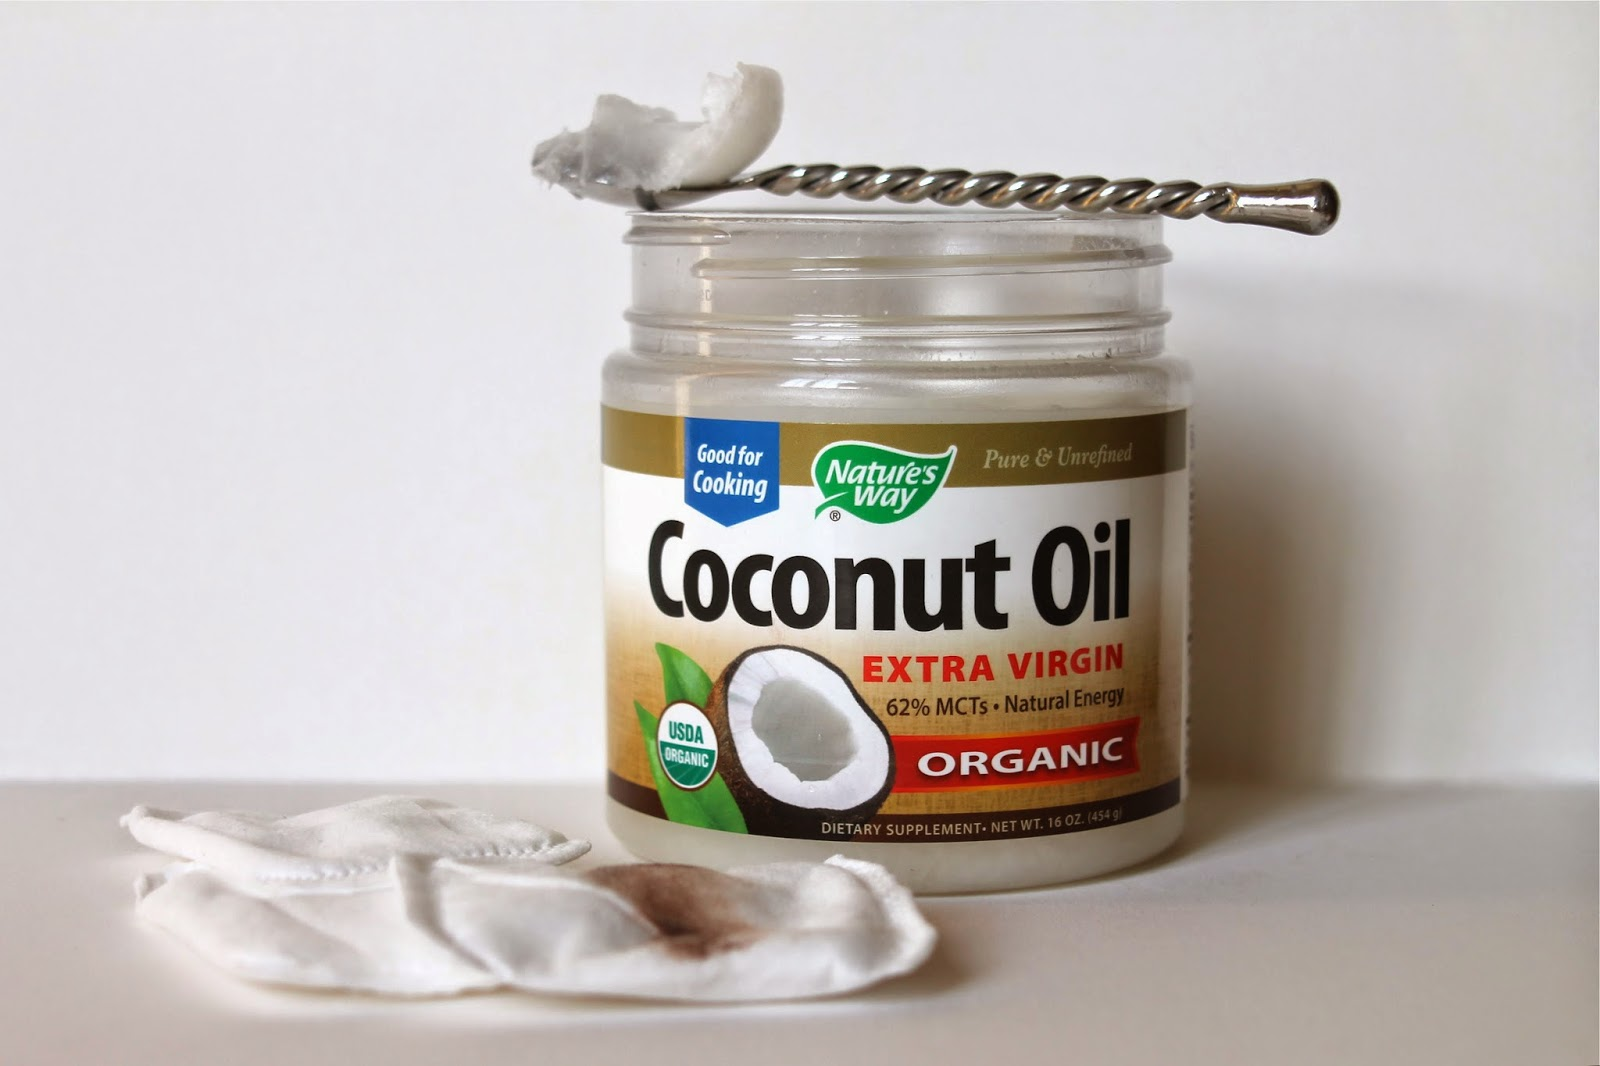 FIVE WAYS I USE COCONUT OIL